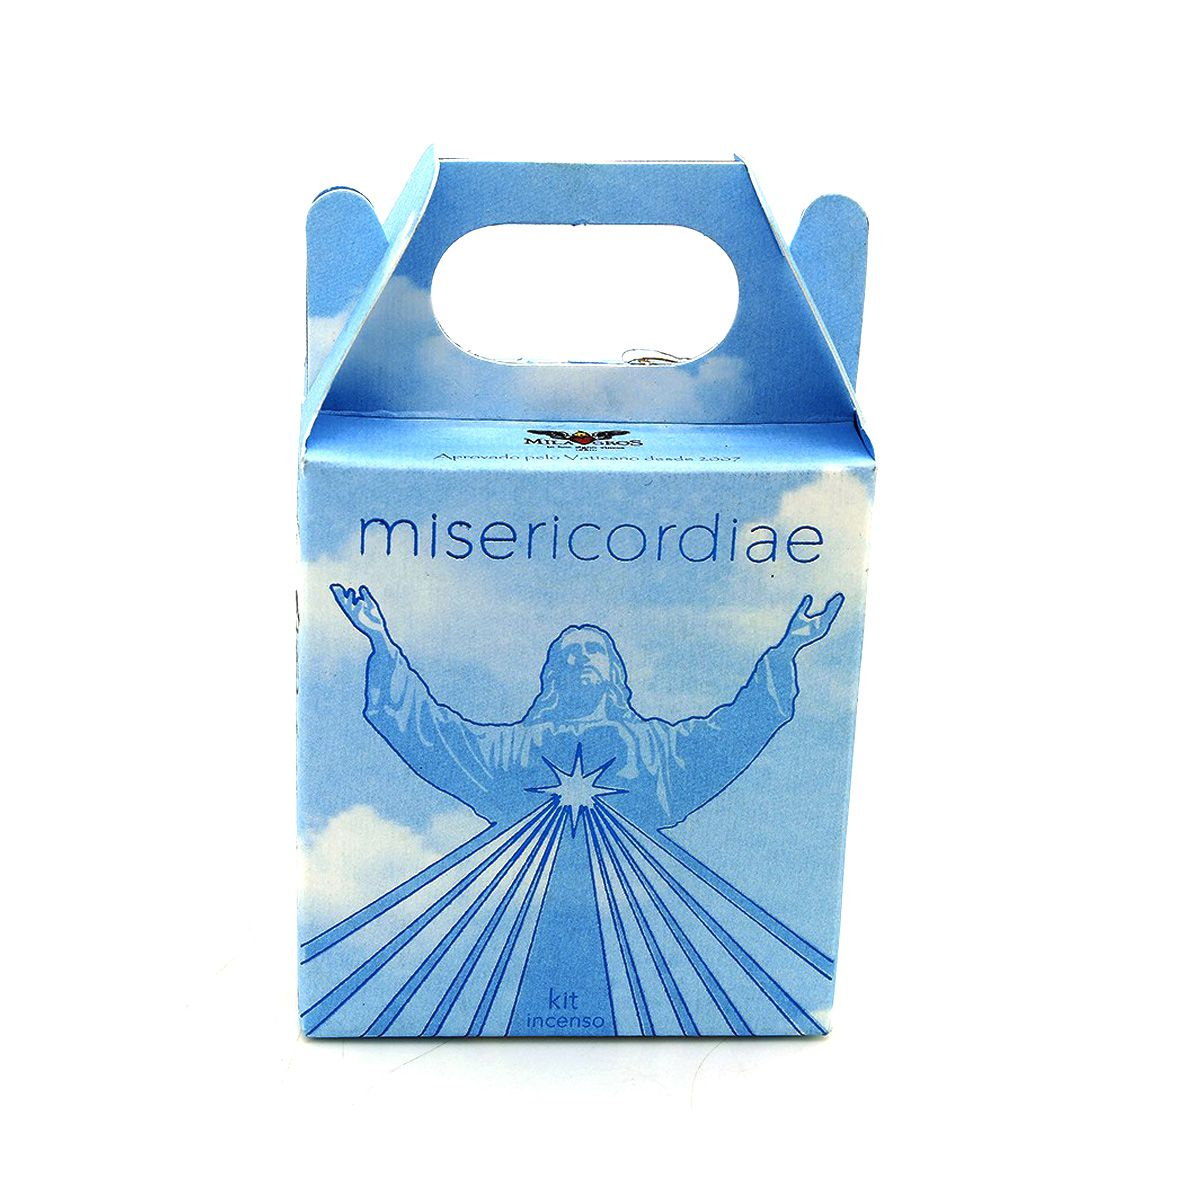 Kit Incenso Misericordiae